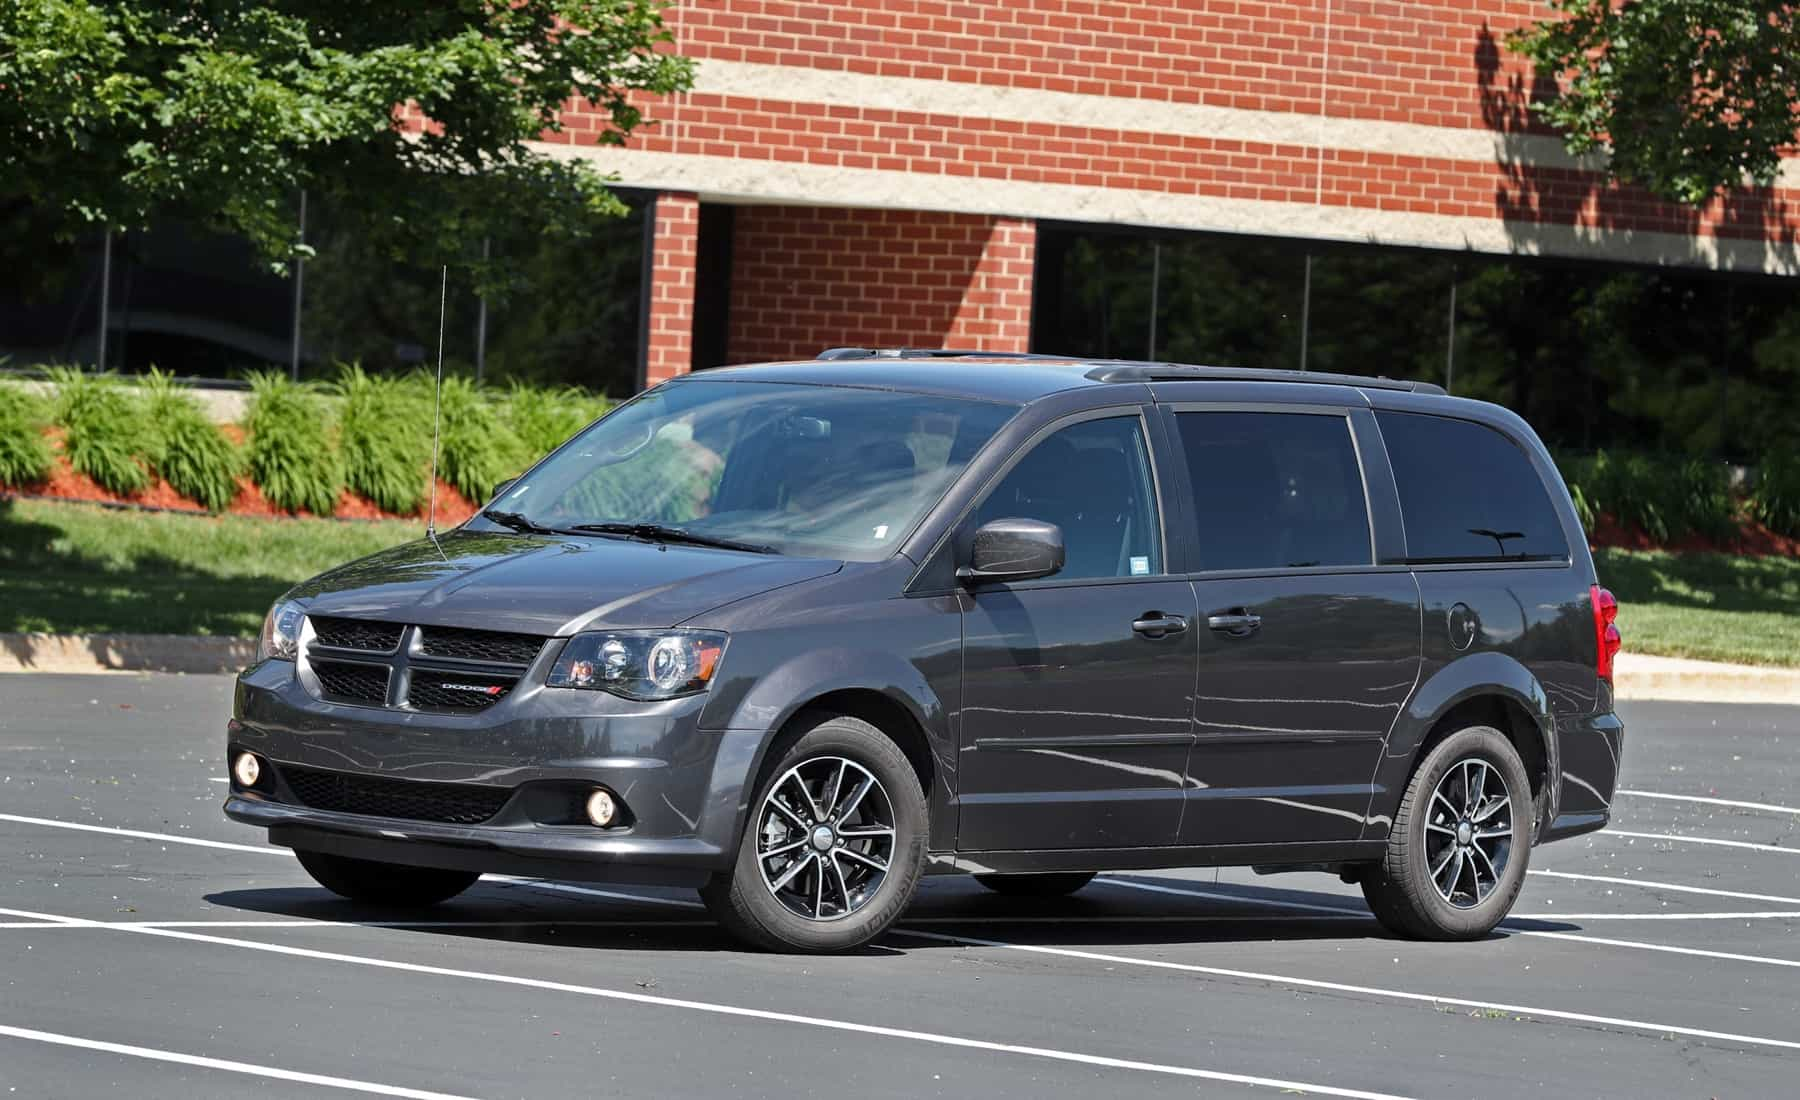 2017 Dodge Grand Caravan Exterior Grey Metallic (View 42 of 47)